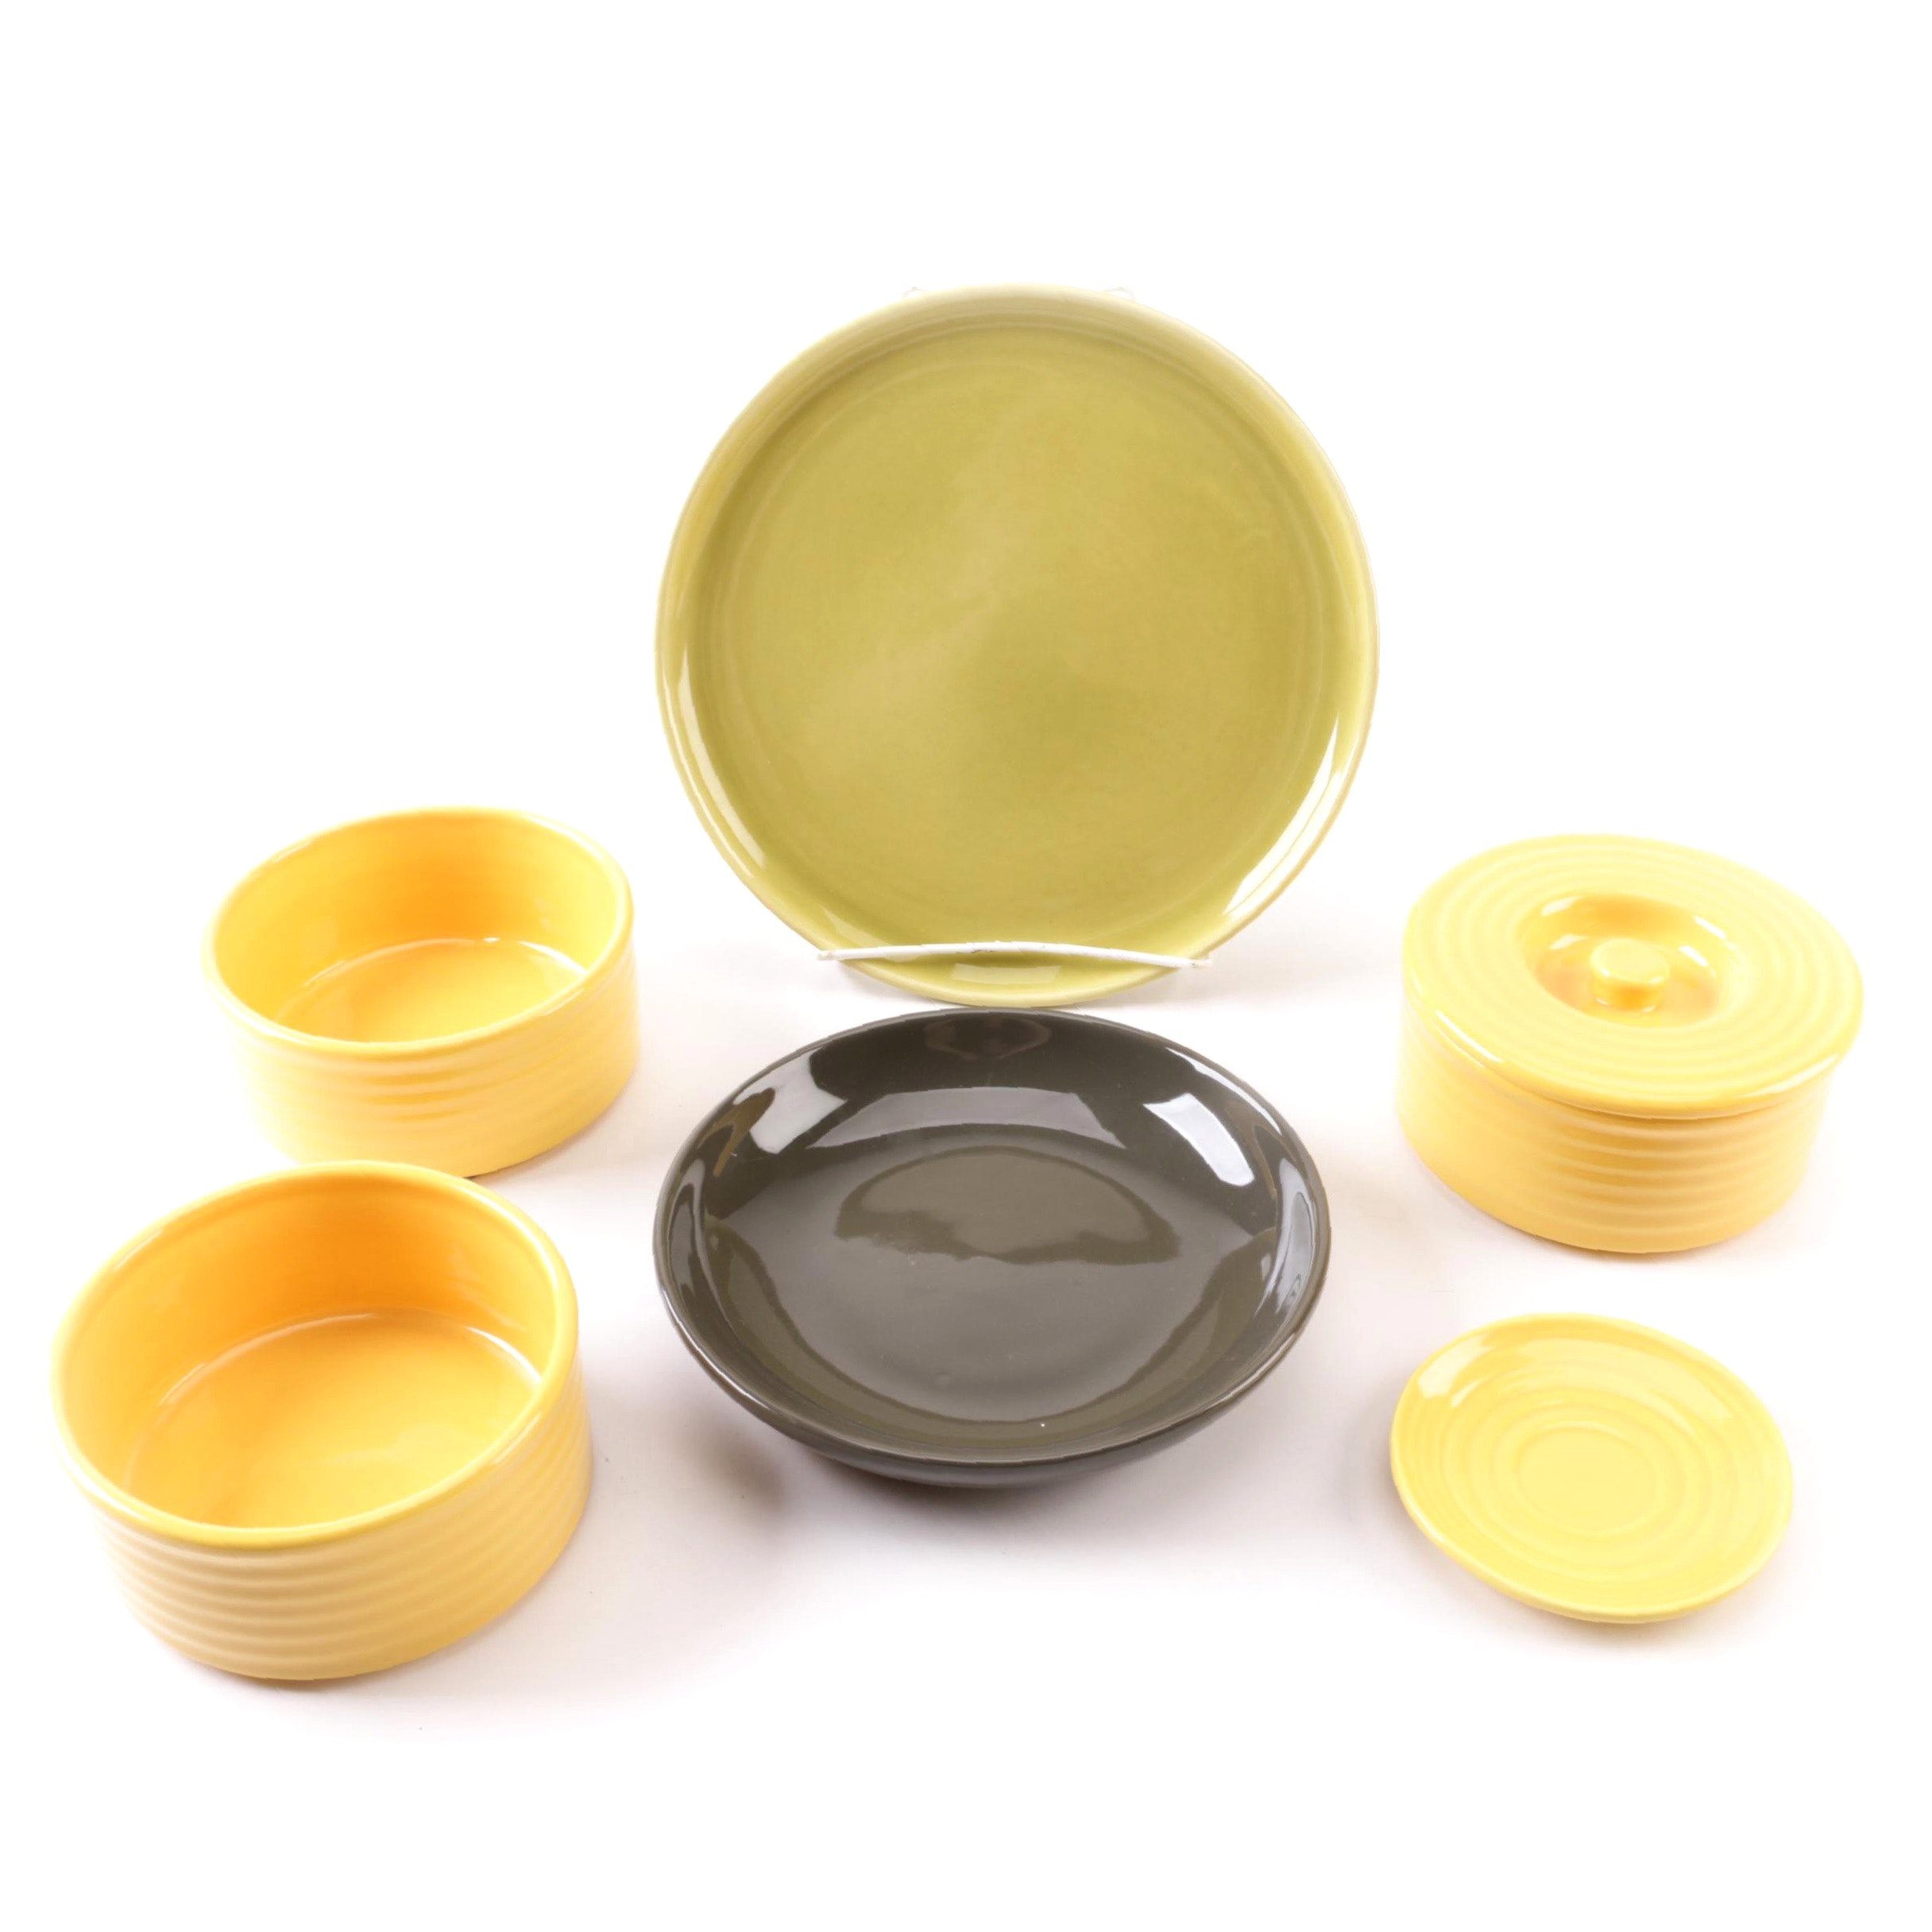 Russel Wright for Bauer Pottery Co. Ceramic Tableware